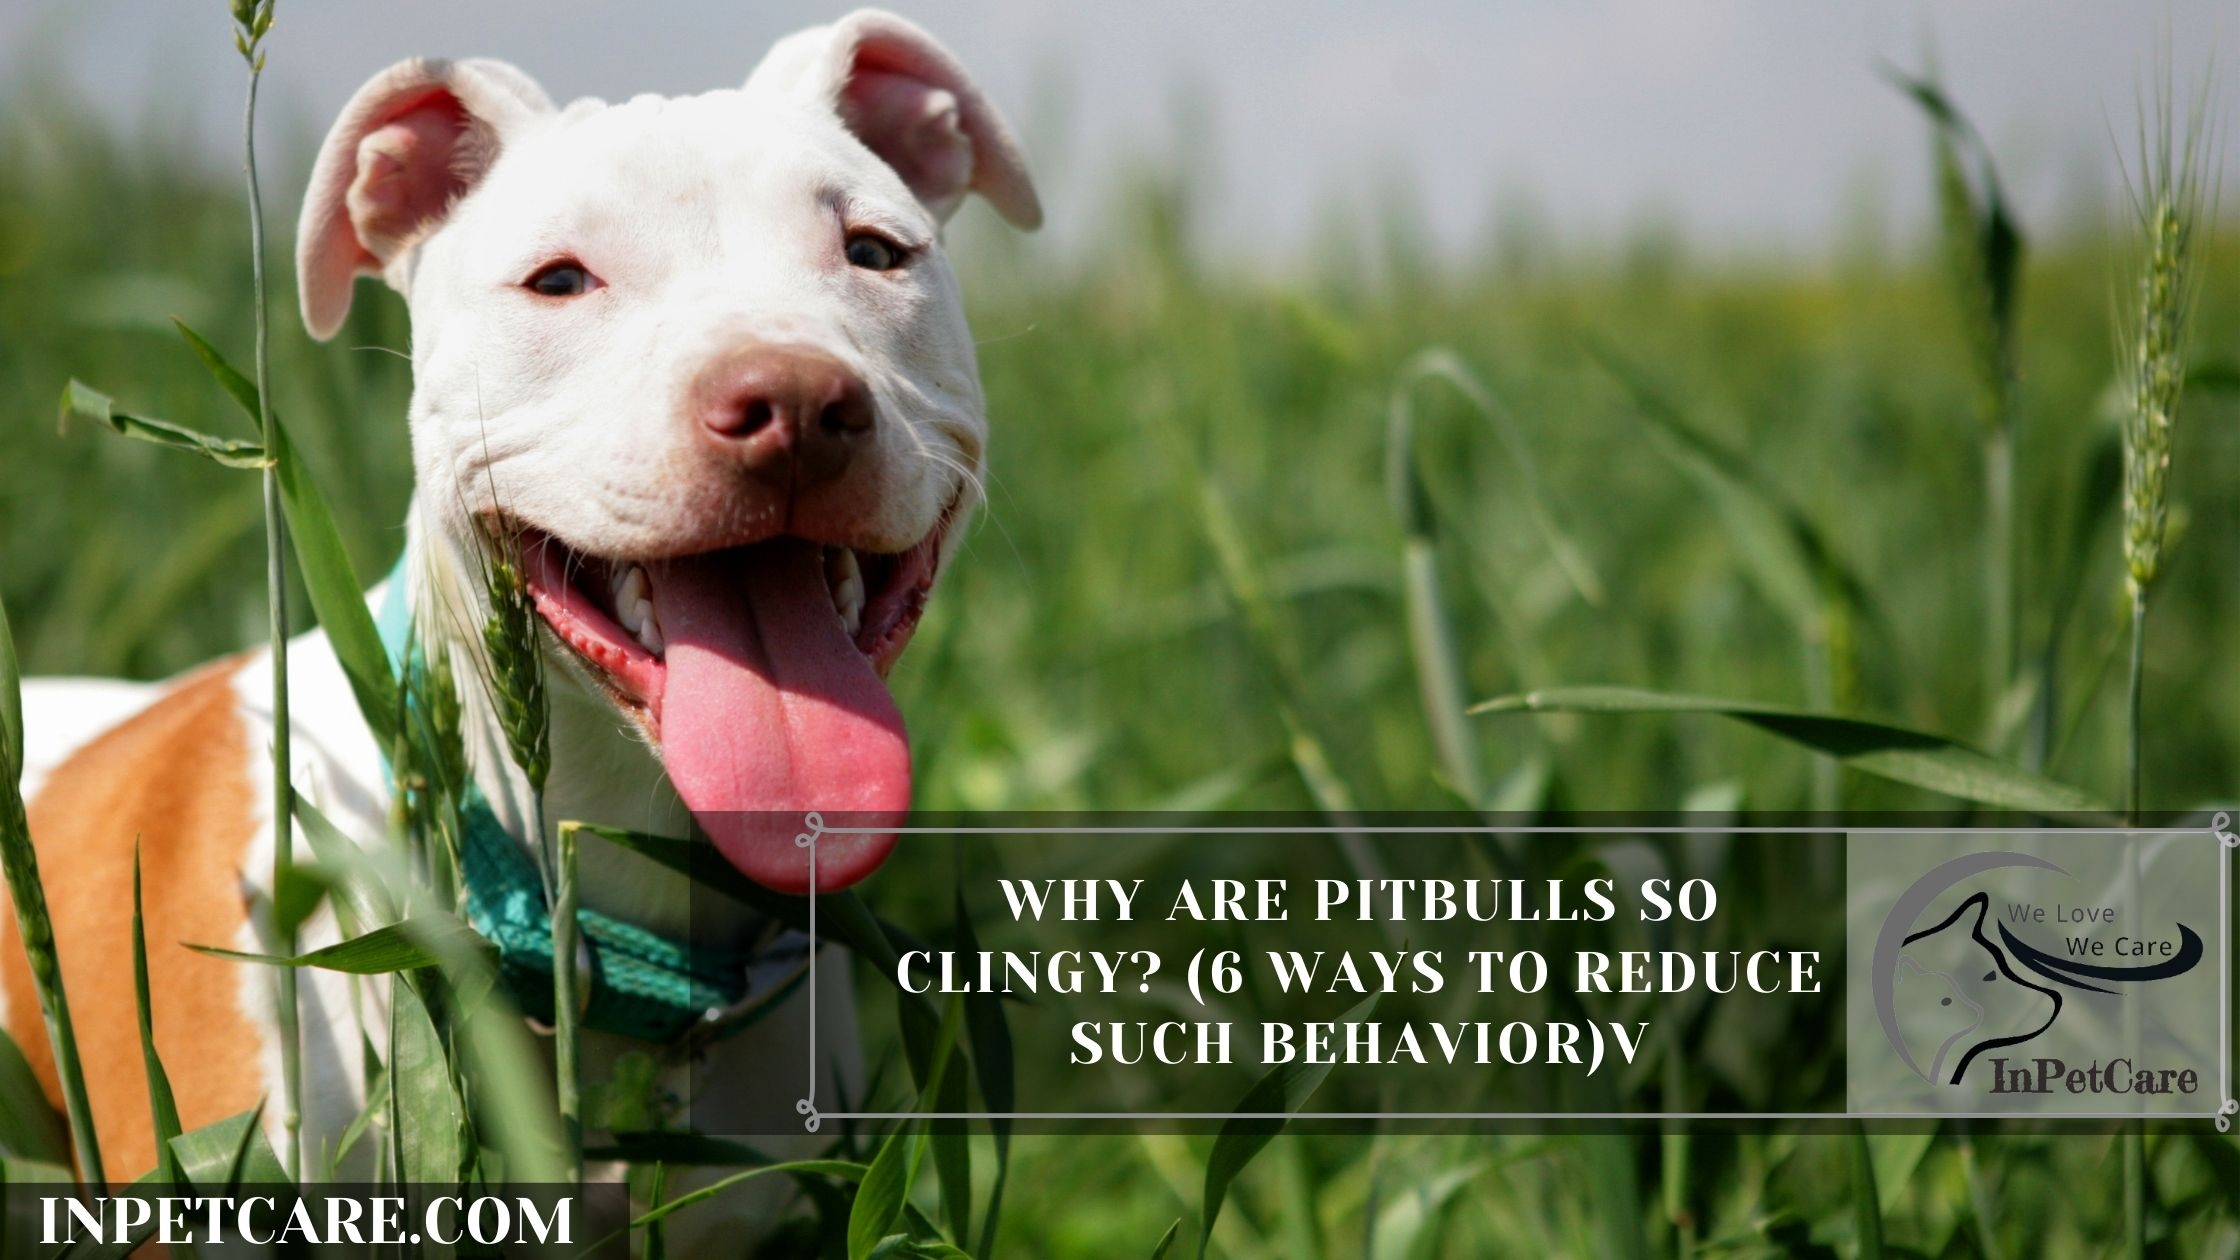 Why Are Pitbulls So Clingy? (6 Ways To Reduce Such Behavior)